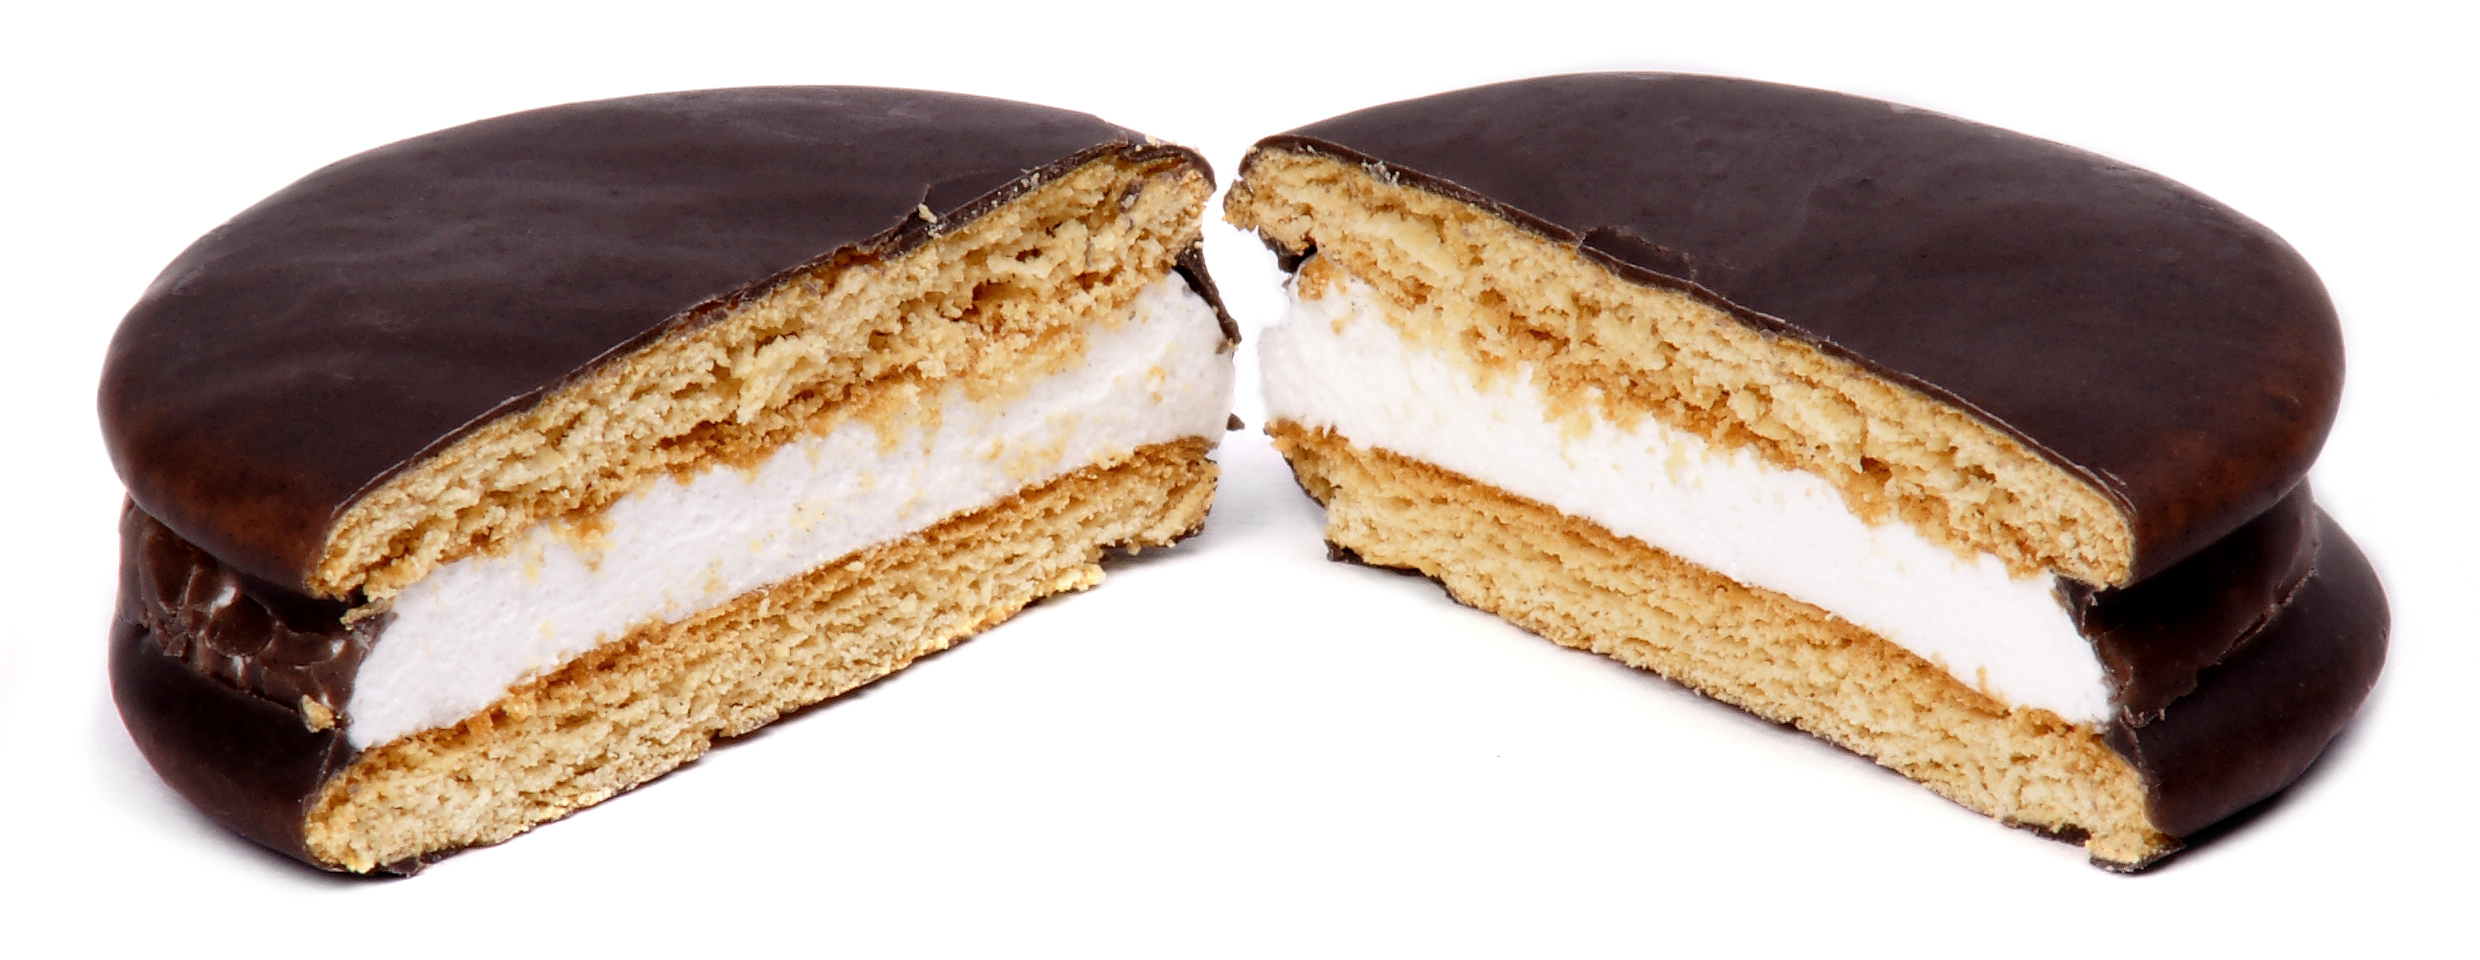 File:Moon-Pie-Single.jpg - Wikipedia